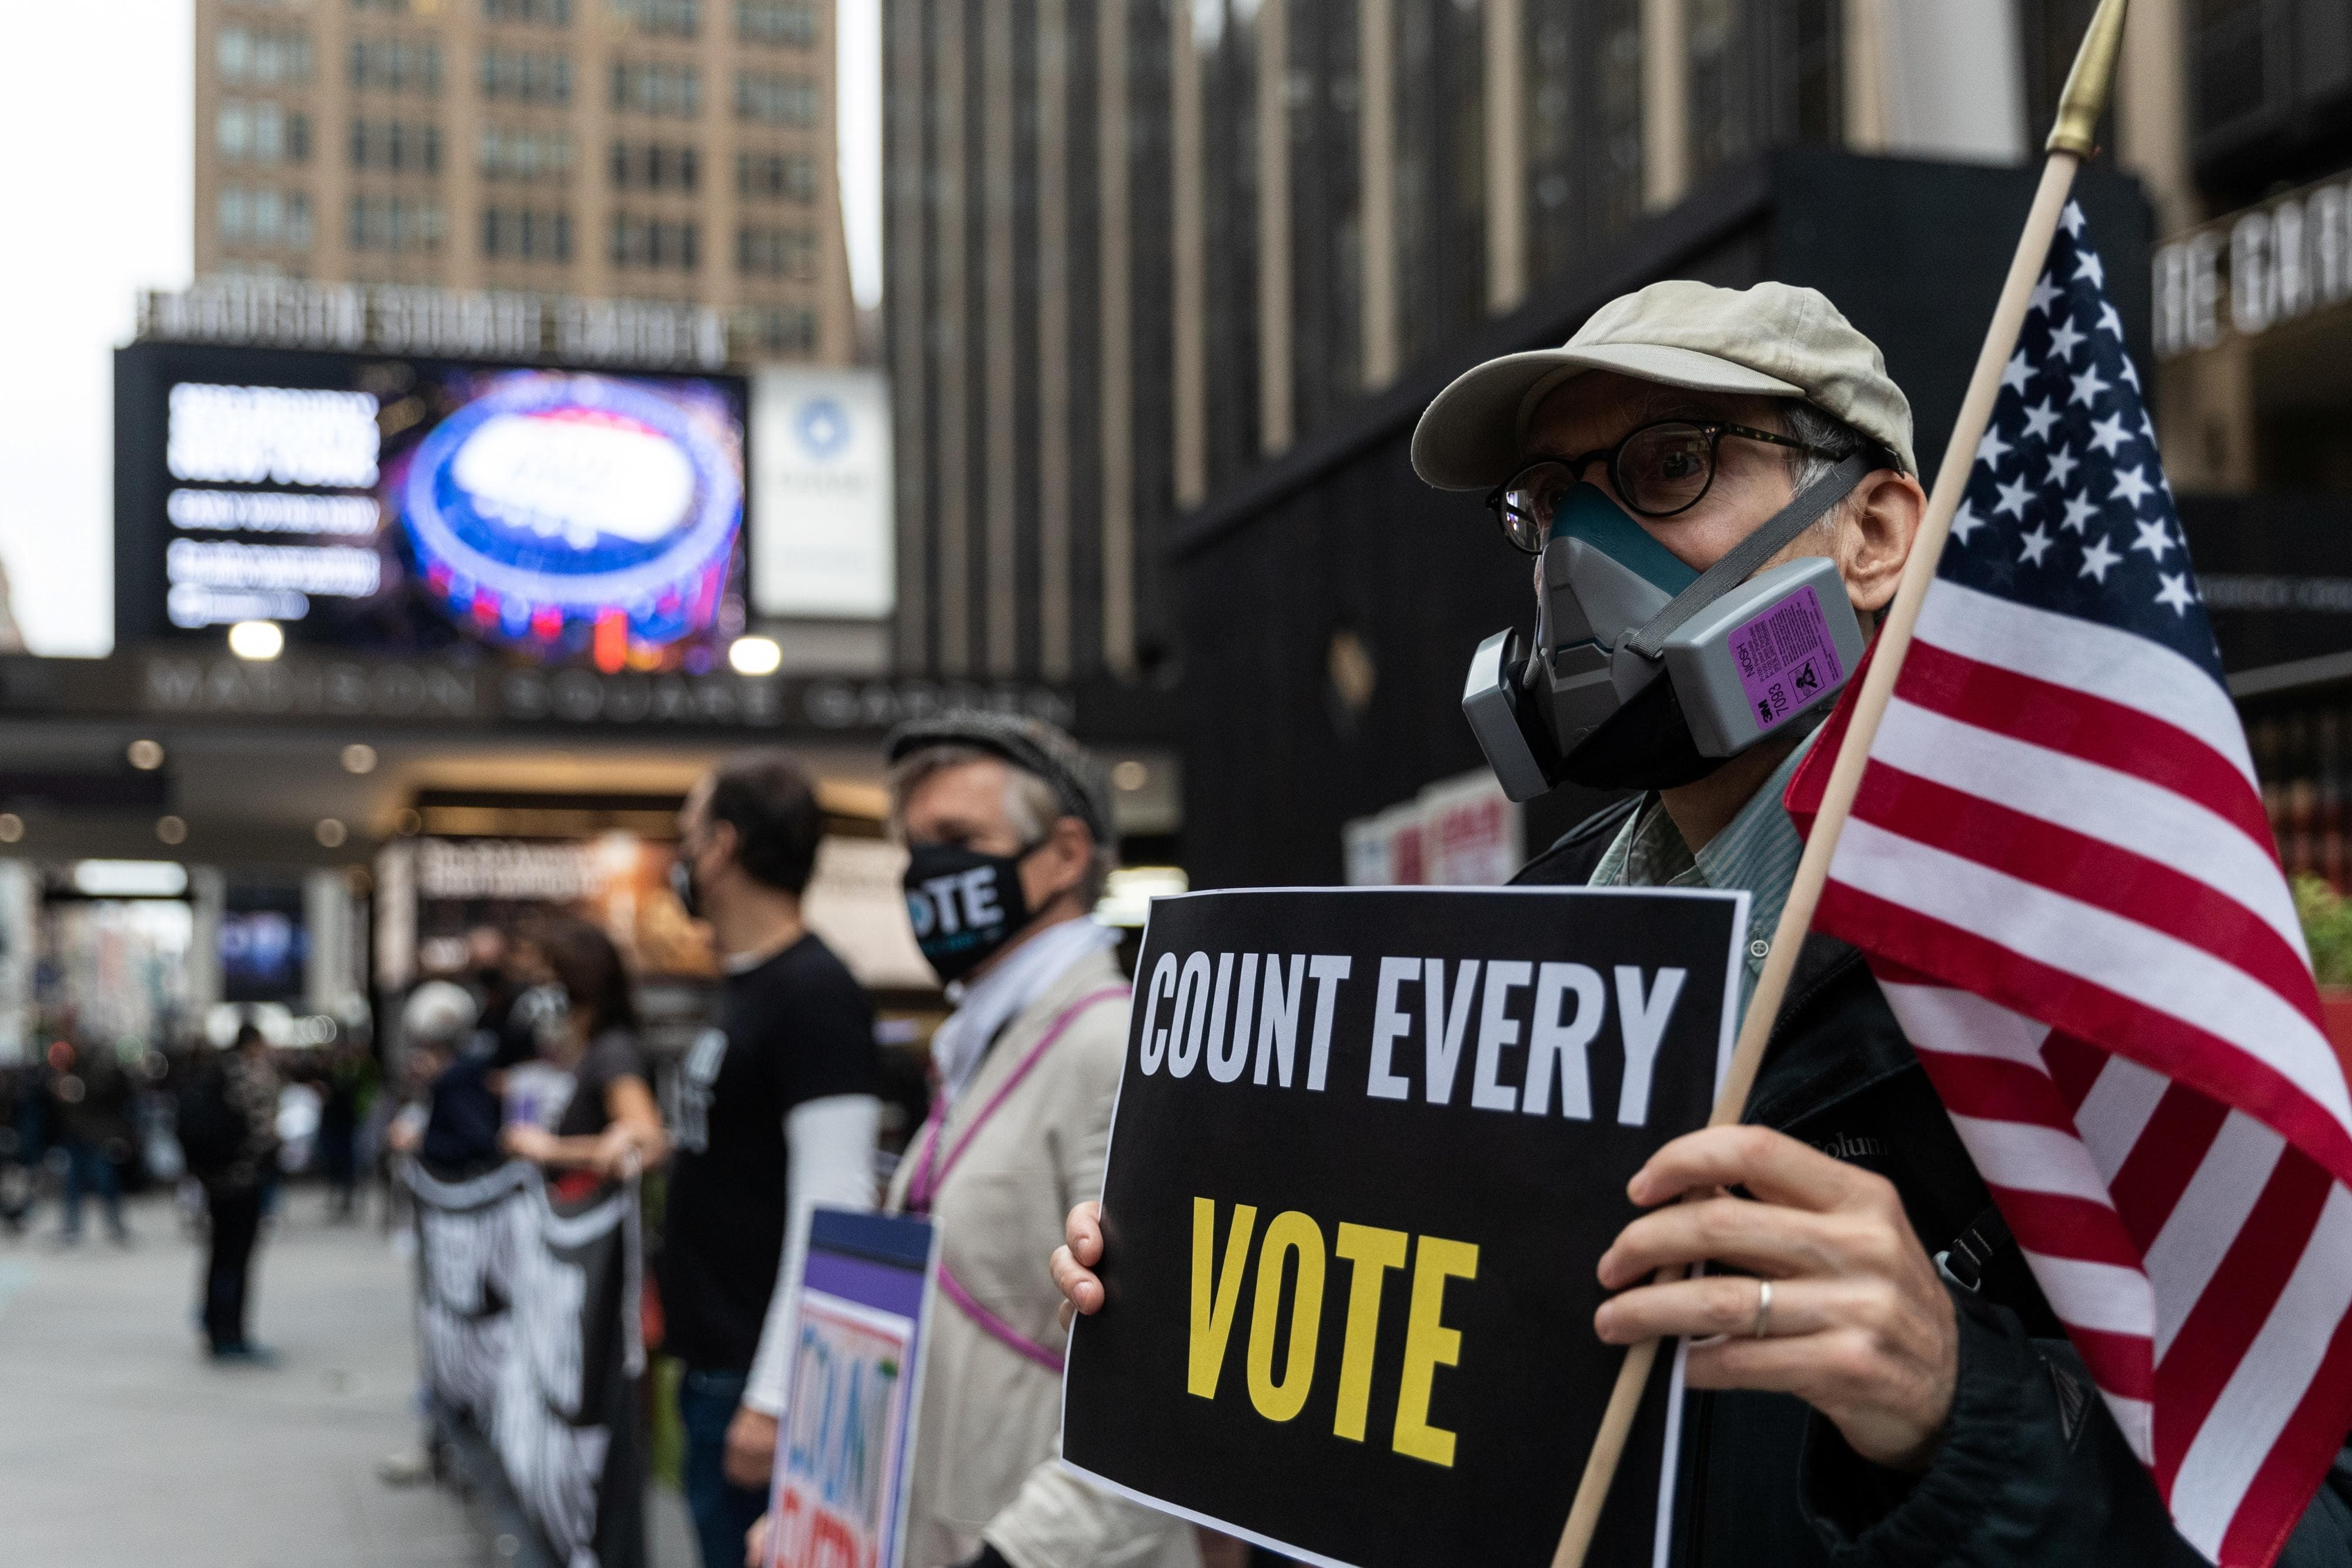 62 million Americans have already cast their votes through mail-in ballots and early-voting alone, shattering previous voting records, and setting up the 2020 Presidential election for historic levels of turnout.  Source: Reuters